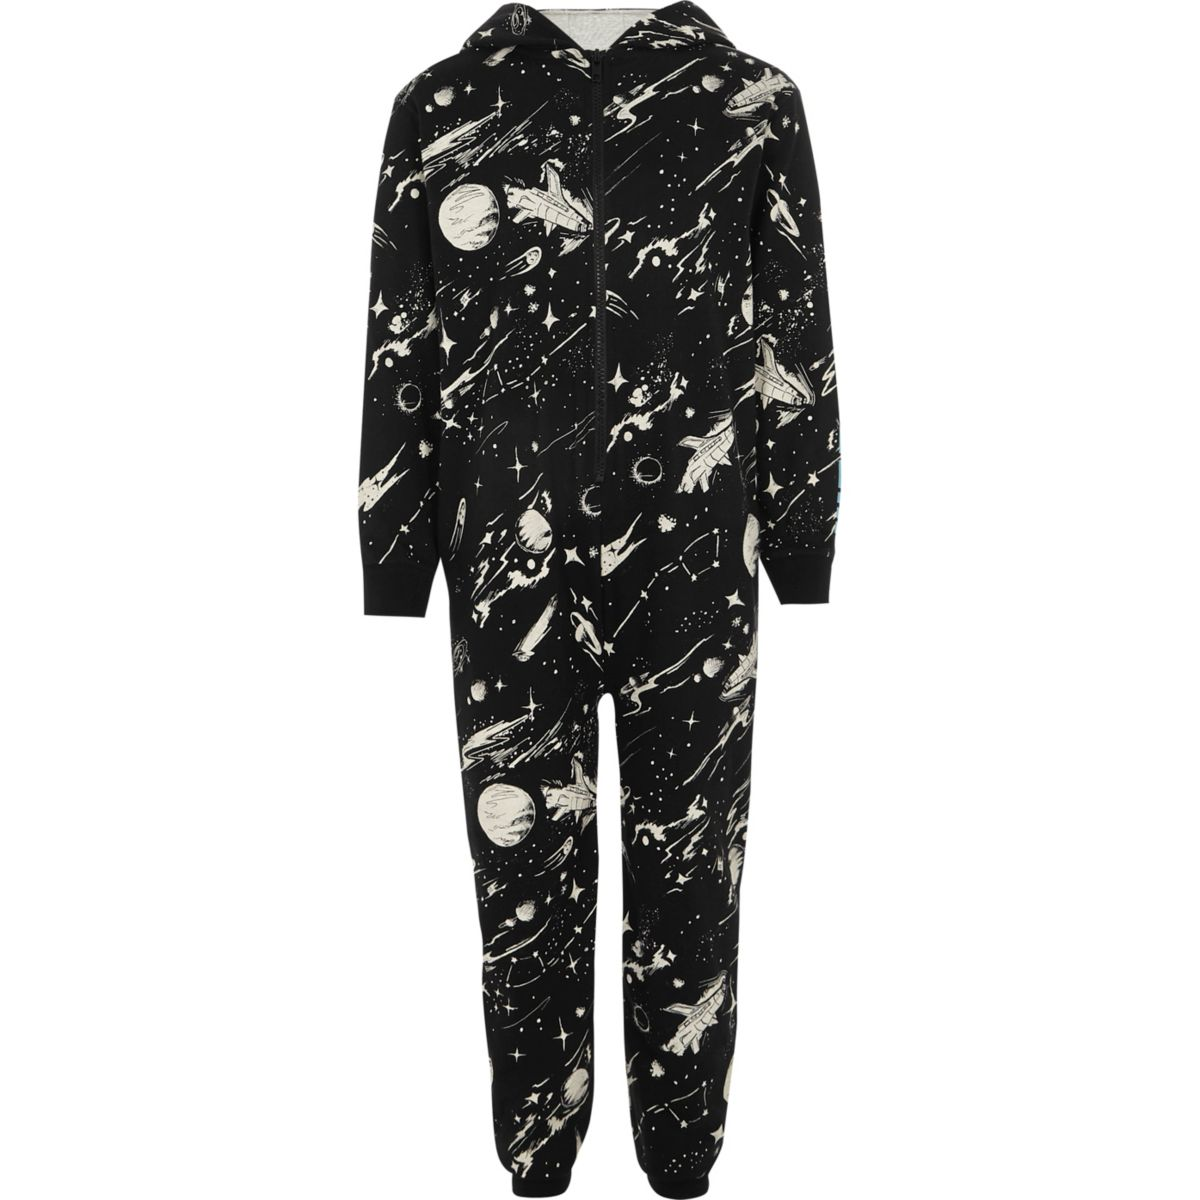 Boys black space theme print onesie